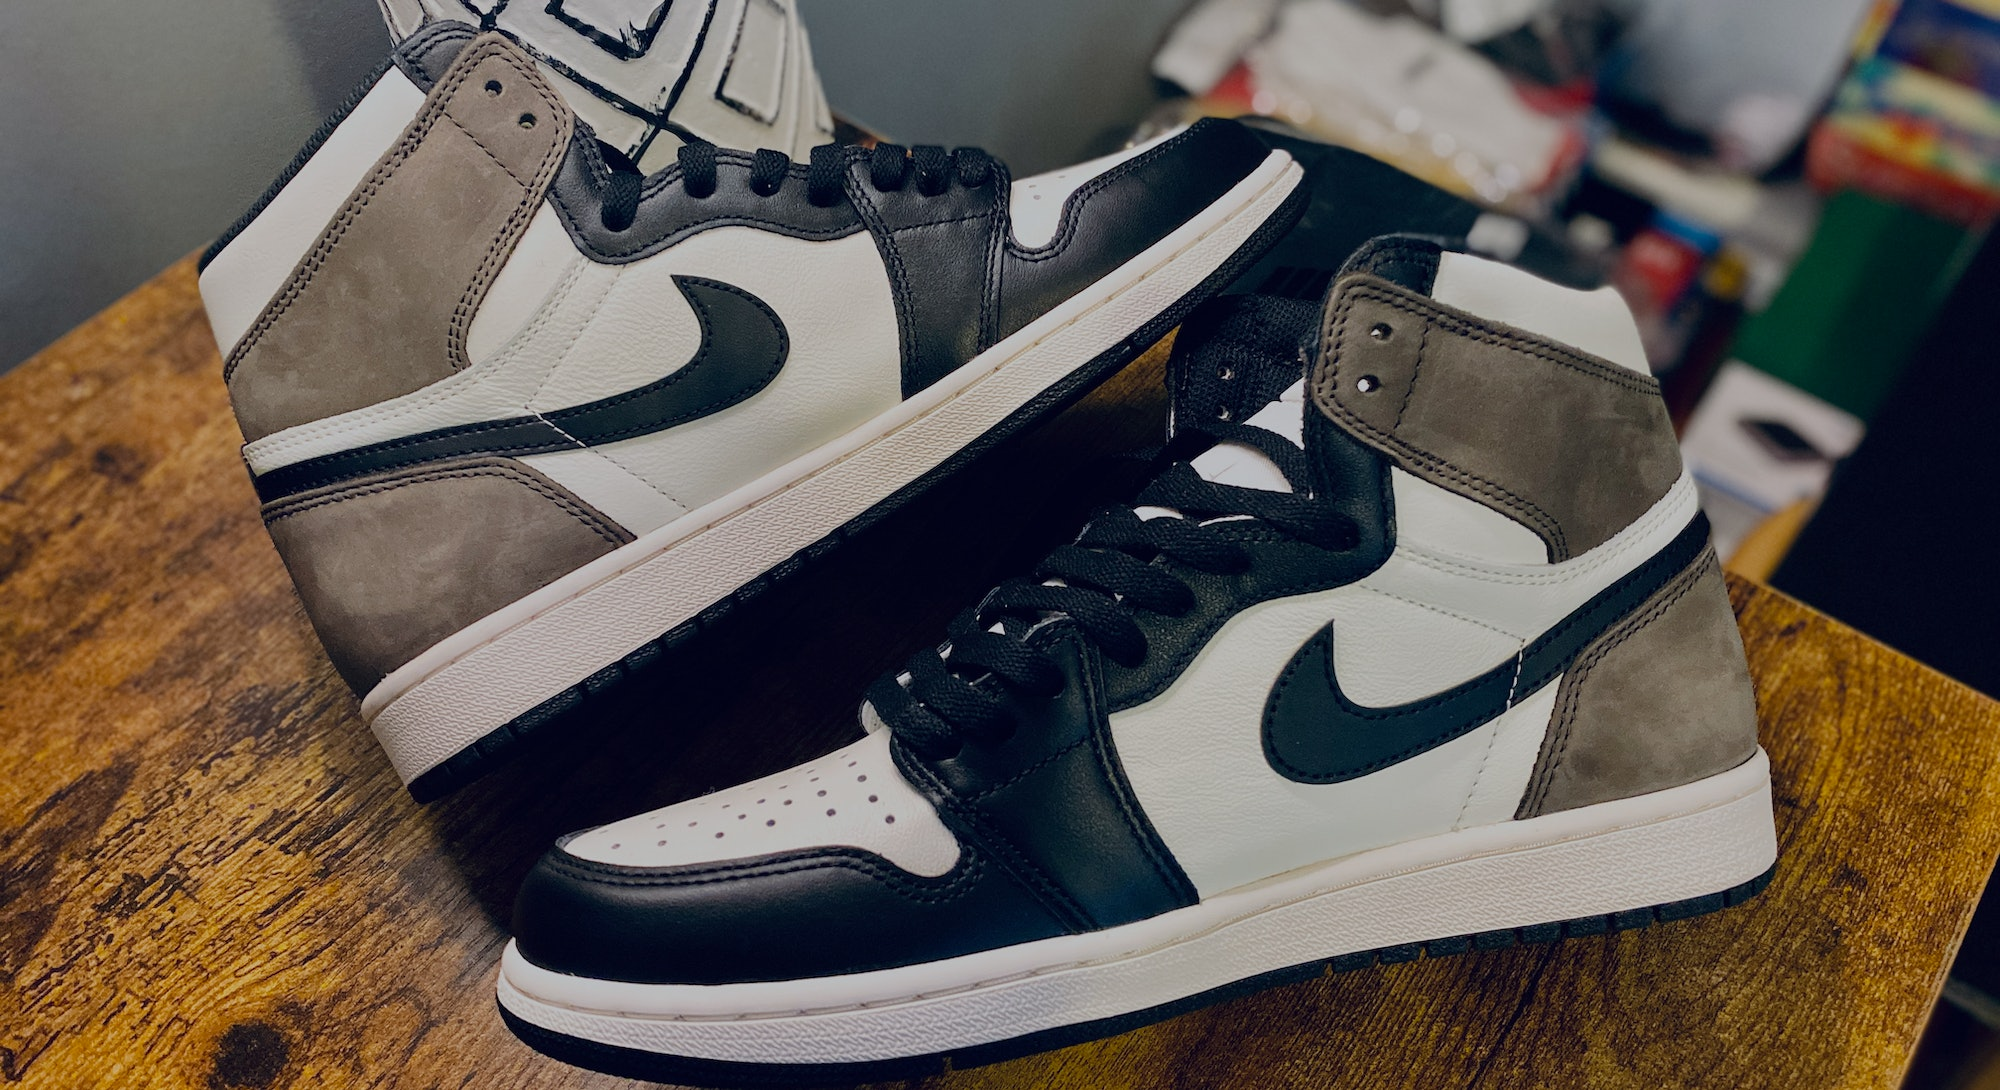 Pictures of Nike's Air Jordan 1: Dark Mocha